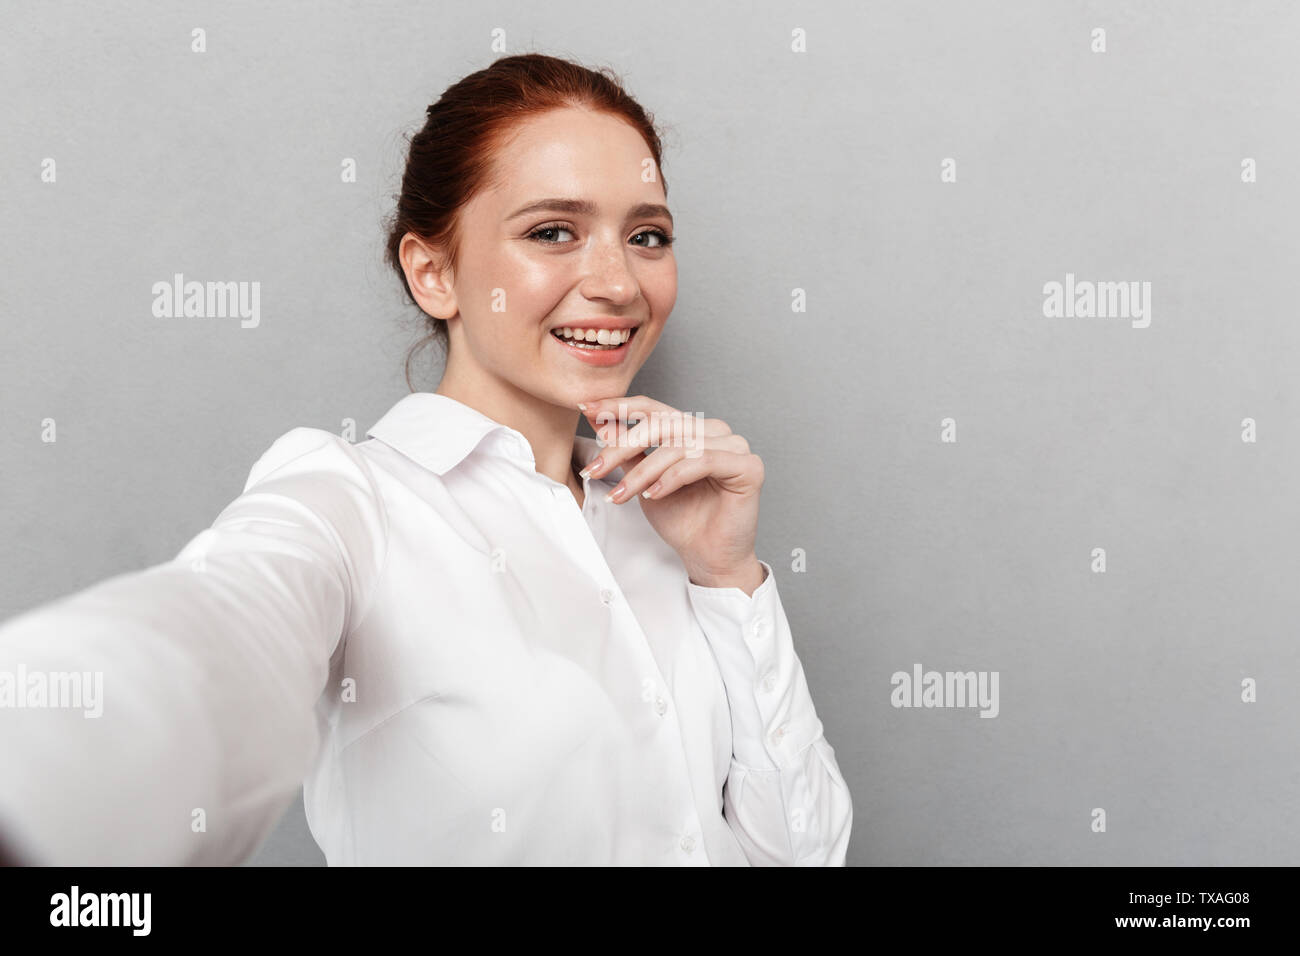 Image of young redhead businesswoman 20s in formal wear smiling at camera while taking selfie photo isolated over gray background - Stock Image